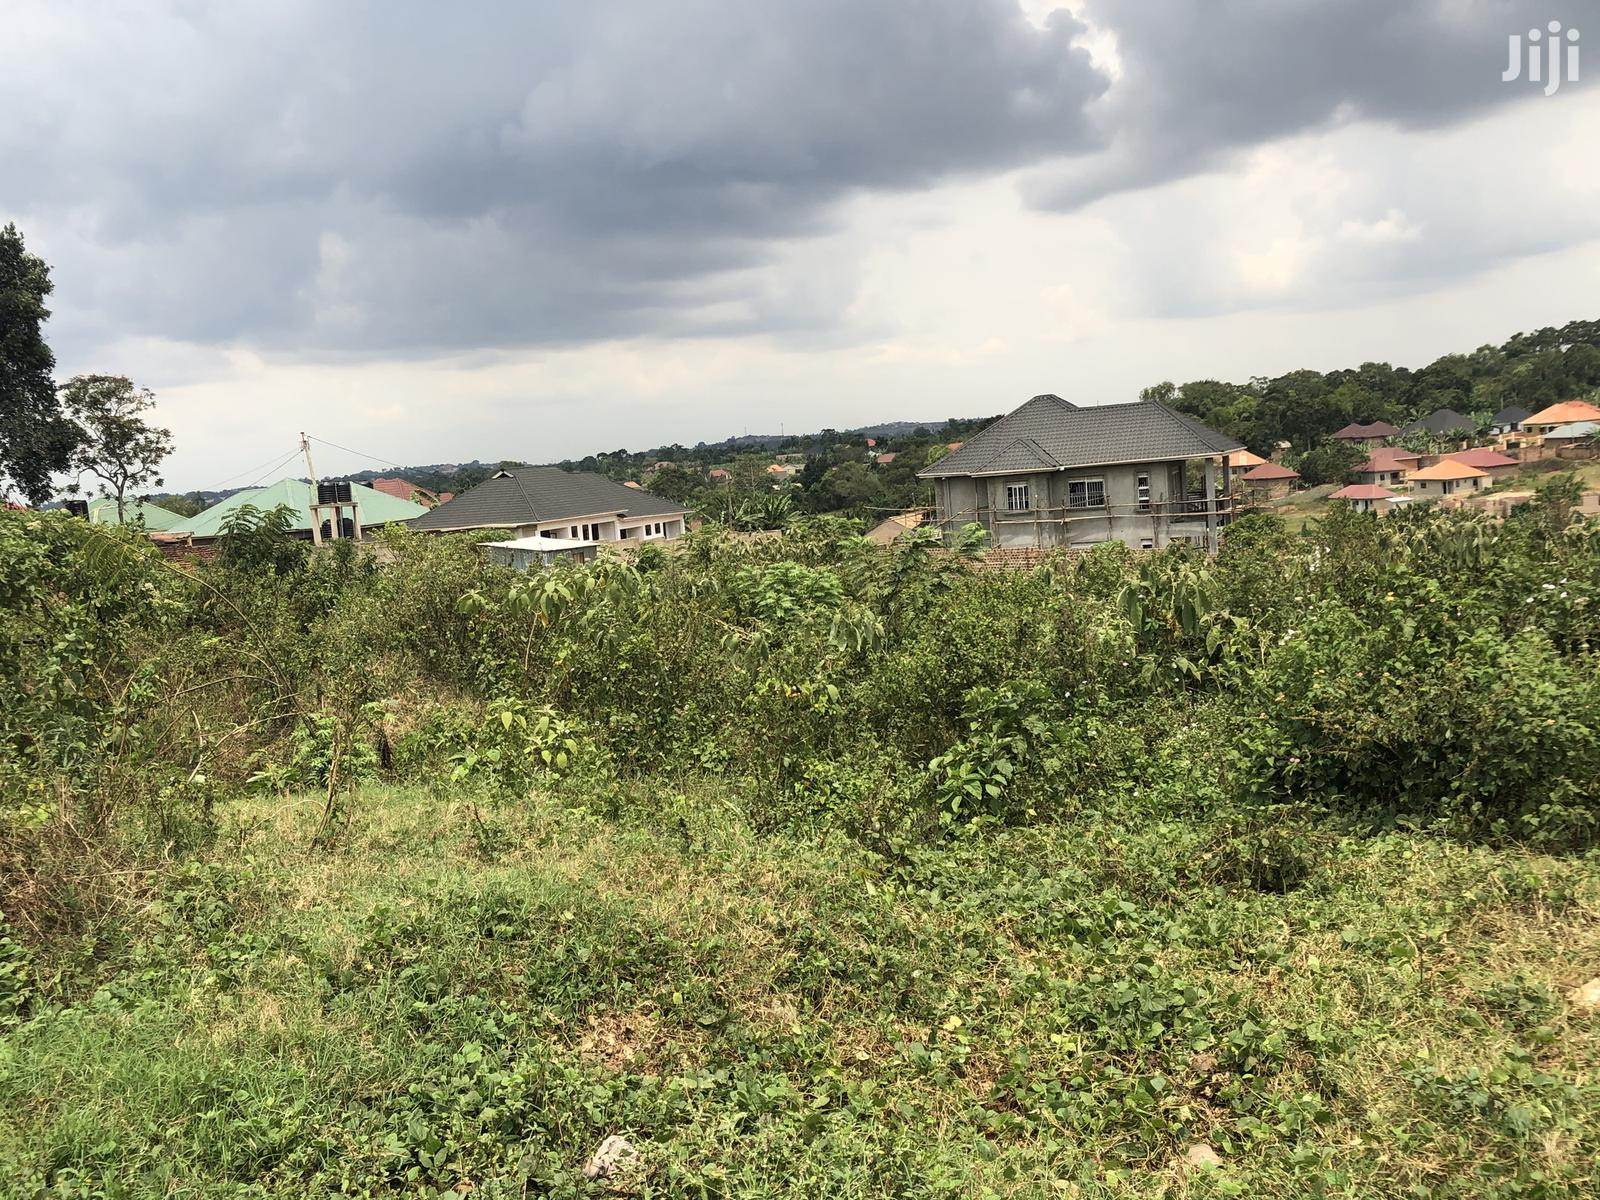 Kira Juicy Plot Close to the Main Tarmack on Sell | Land & Plots For Sale for sale in Kampala, Central Region, Uganda